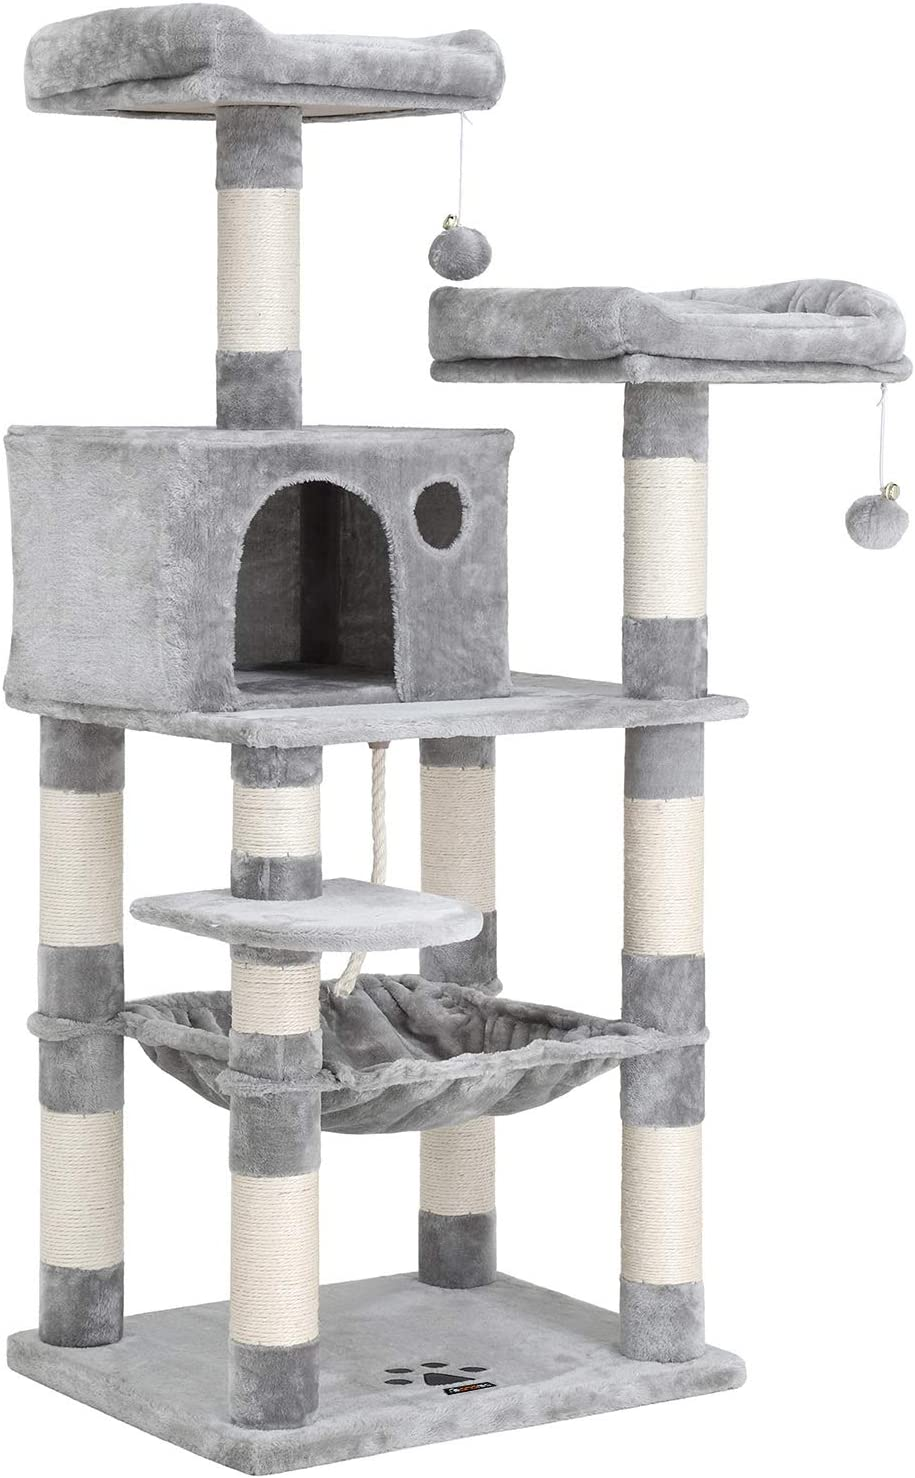 FEANDREA 56.3 inches Multi-Level Cat Tree with Sisal-Covered Scratching Posts, Plush Perches, Hammock and Condo, Cat Tower Furniture - for Kittens, Cats and...